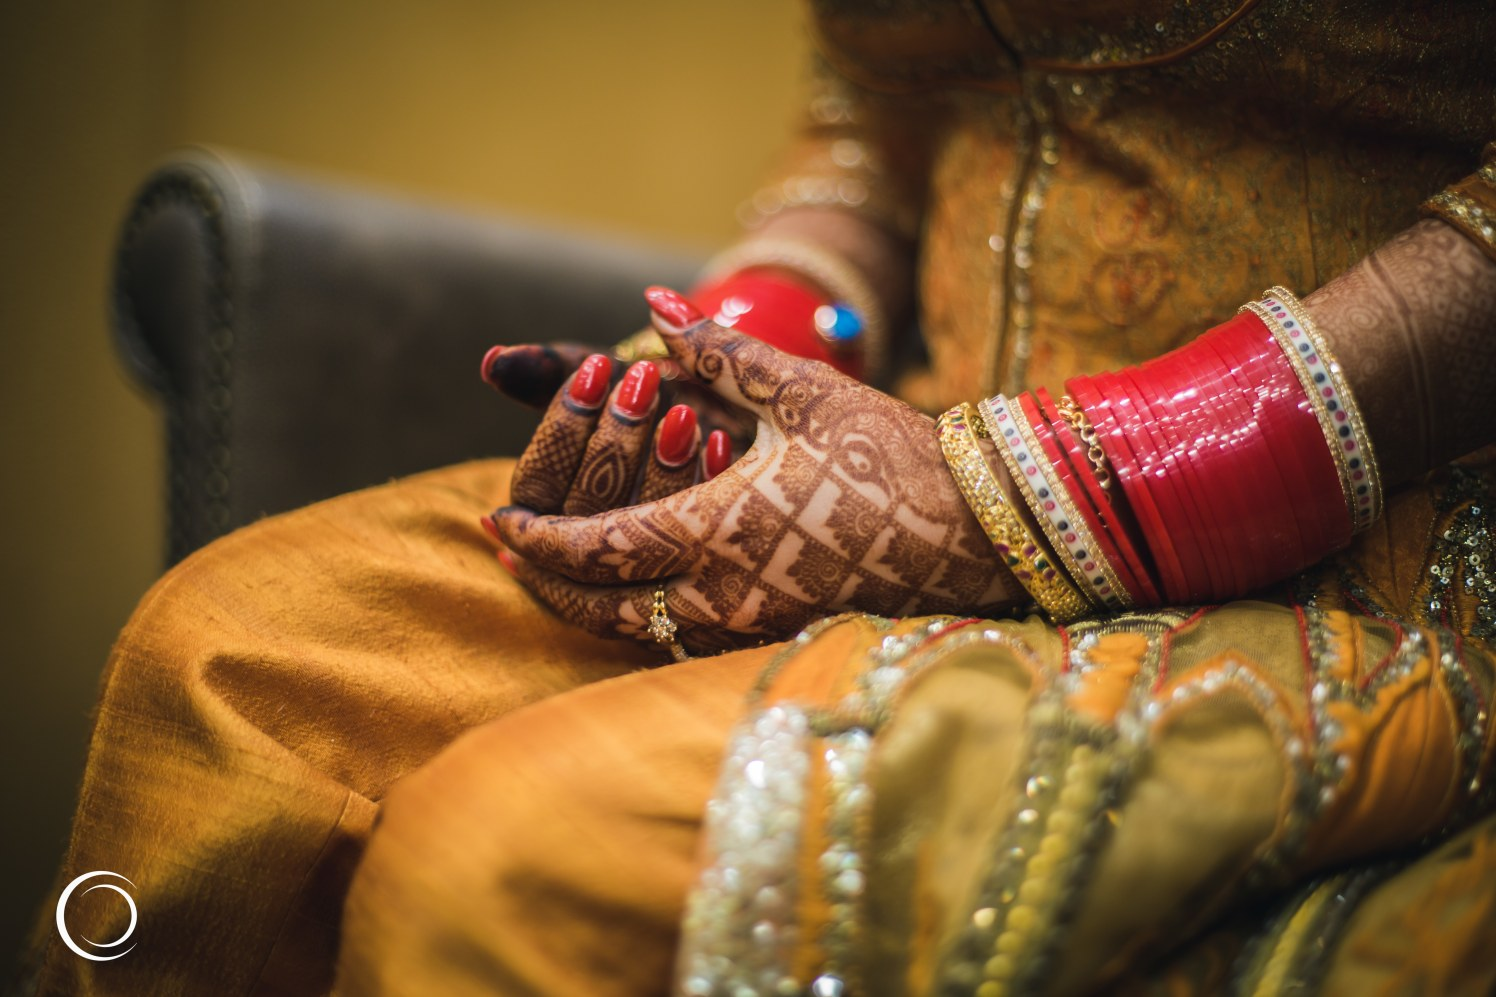 Appeasement In Glance by Amish Photography Wedding-photography | Weddings Photos & Ideas